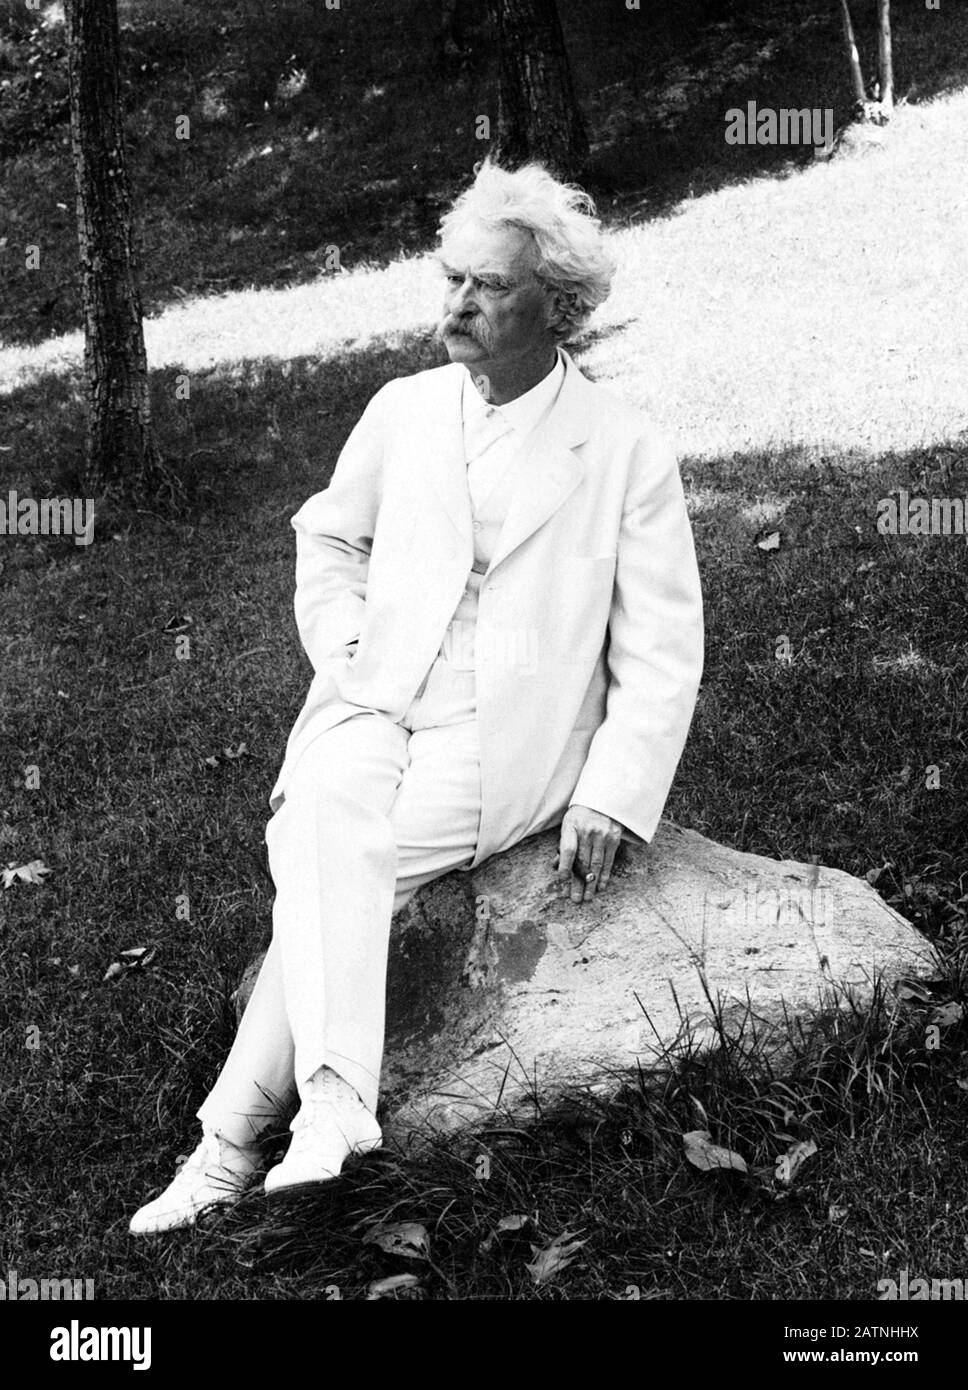 Vintage portrait photo of American writer and humourist Samuel Langhorne Clemens (1835 – 1910), better known by his pen name of Mark Twain. Photo circa 1907 by Underwood & Underwood. Stock Photo